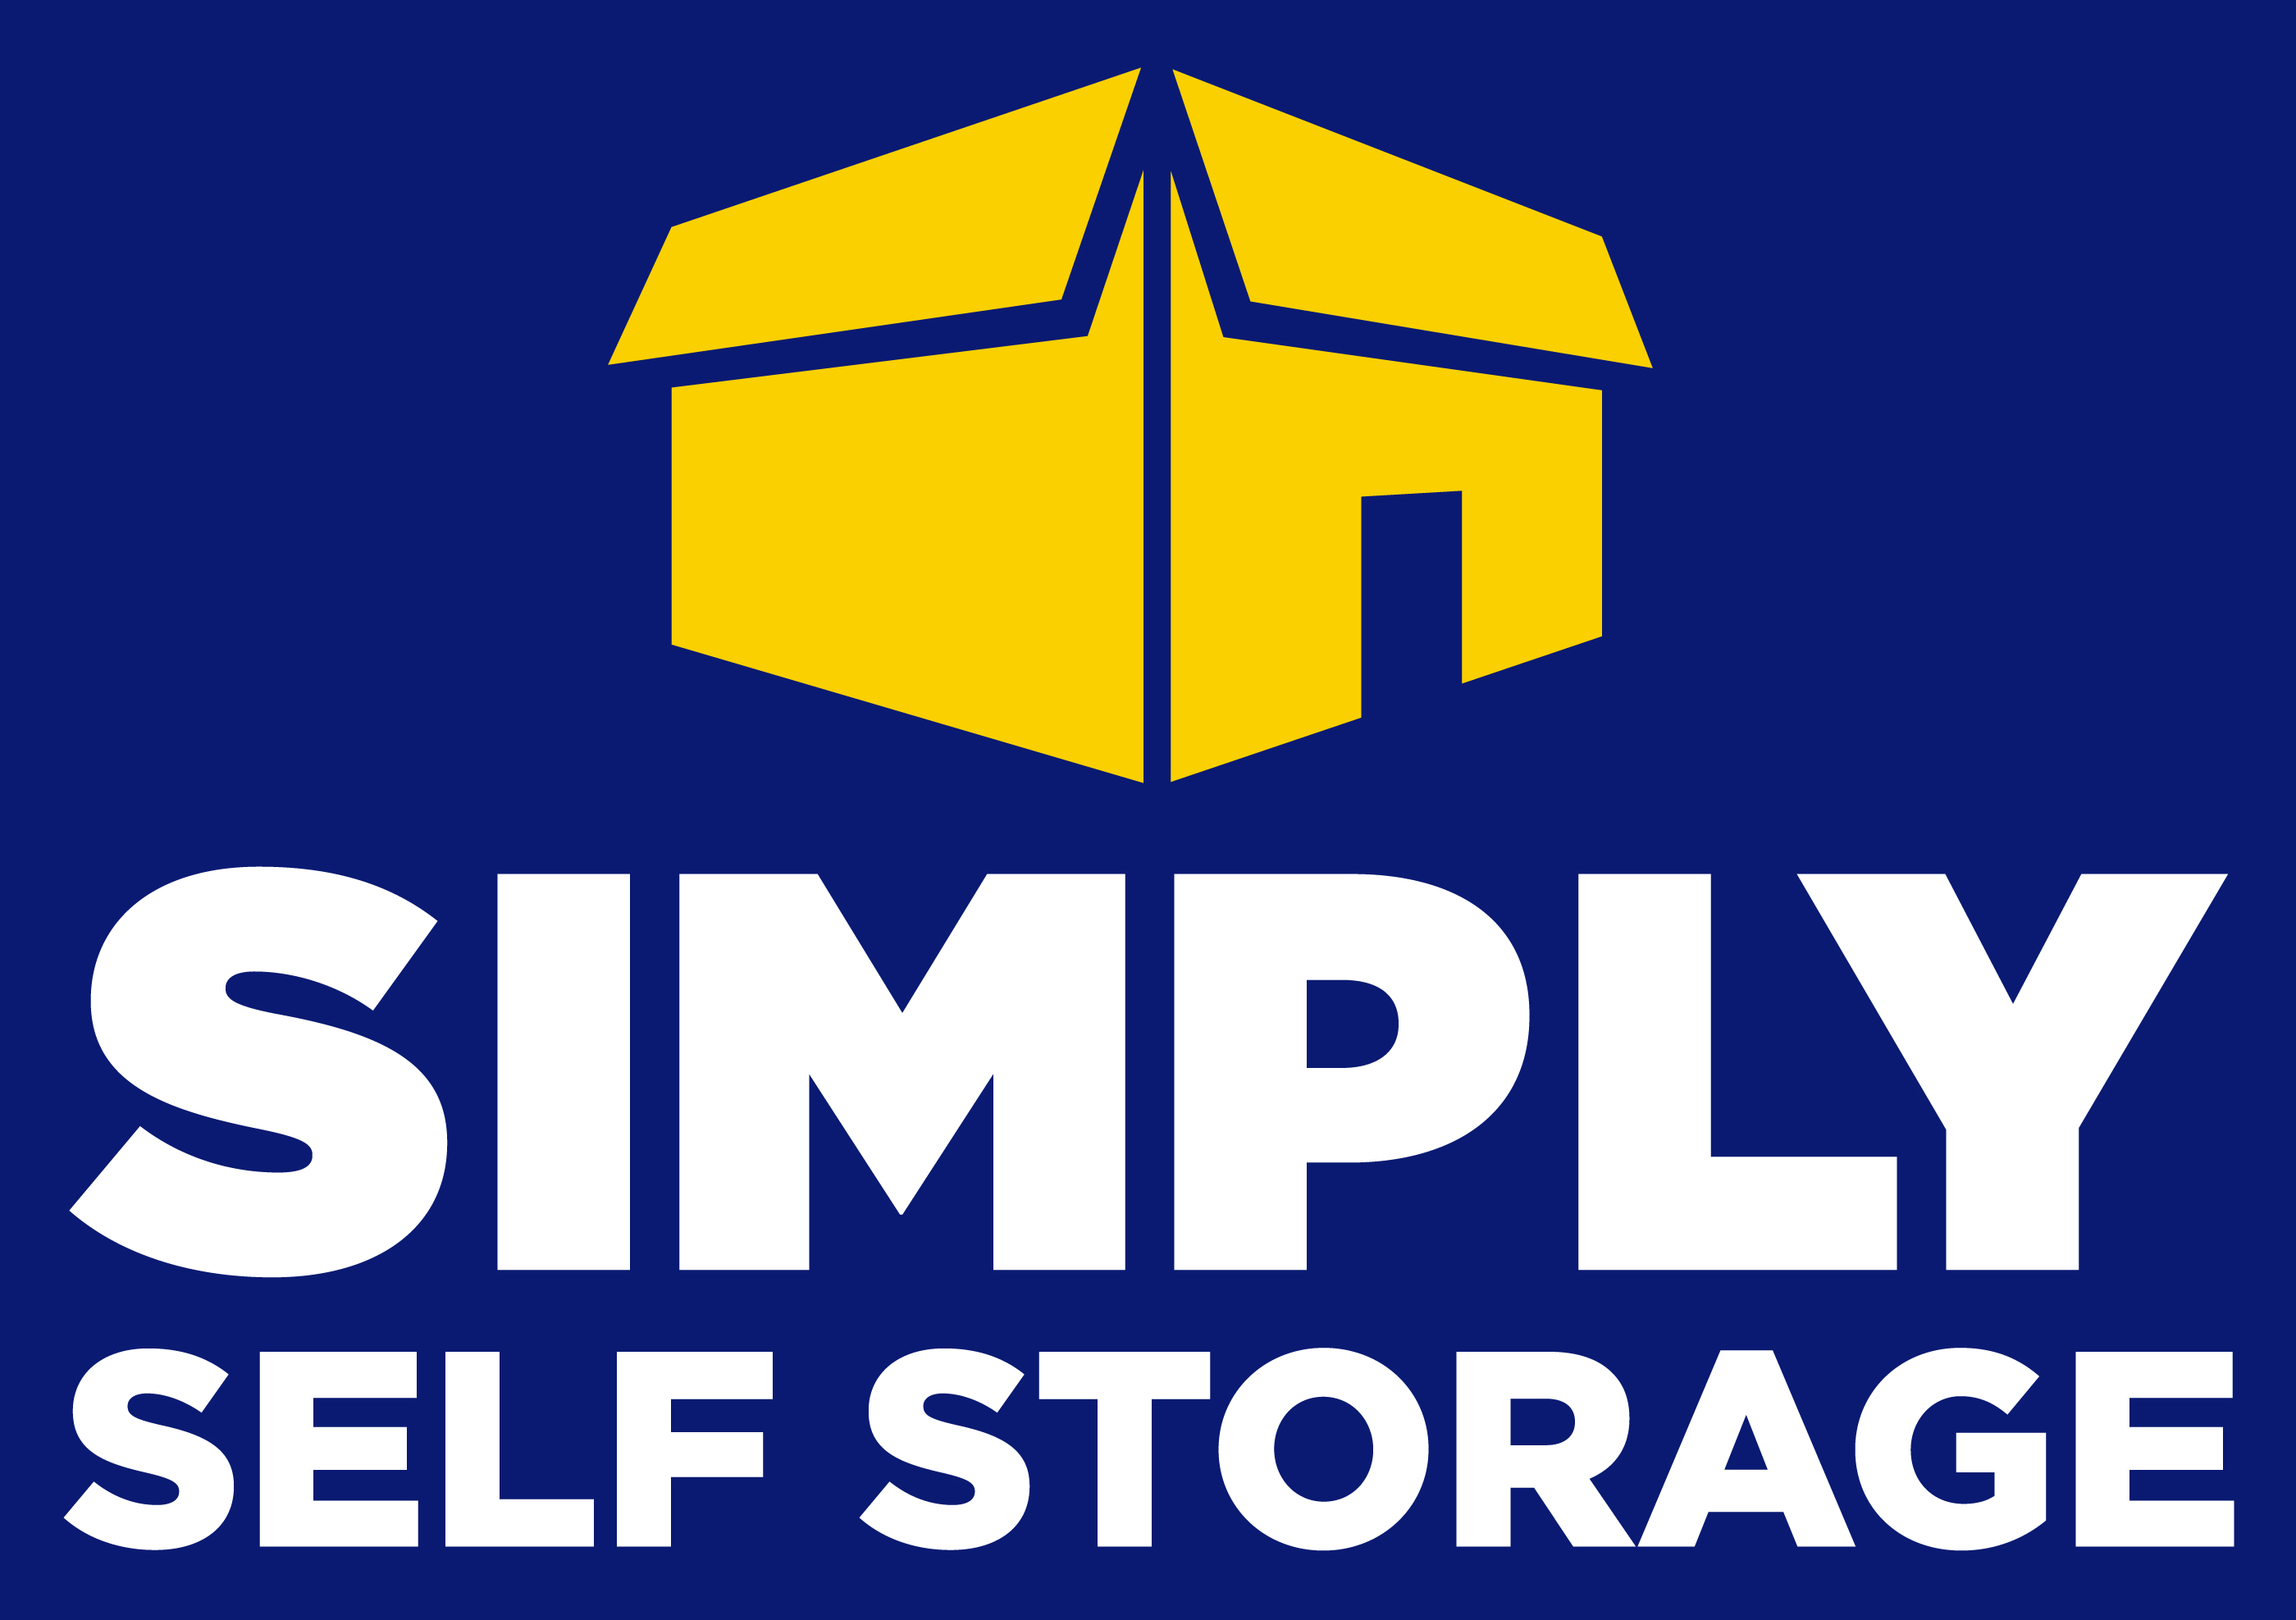 Simply Self Storage Hires Senior Financial \u0026 Planning Analyst and VP of Underwriting